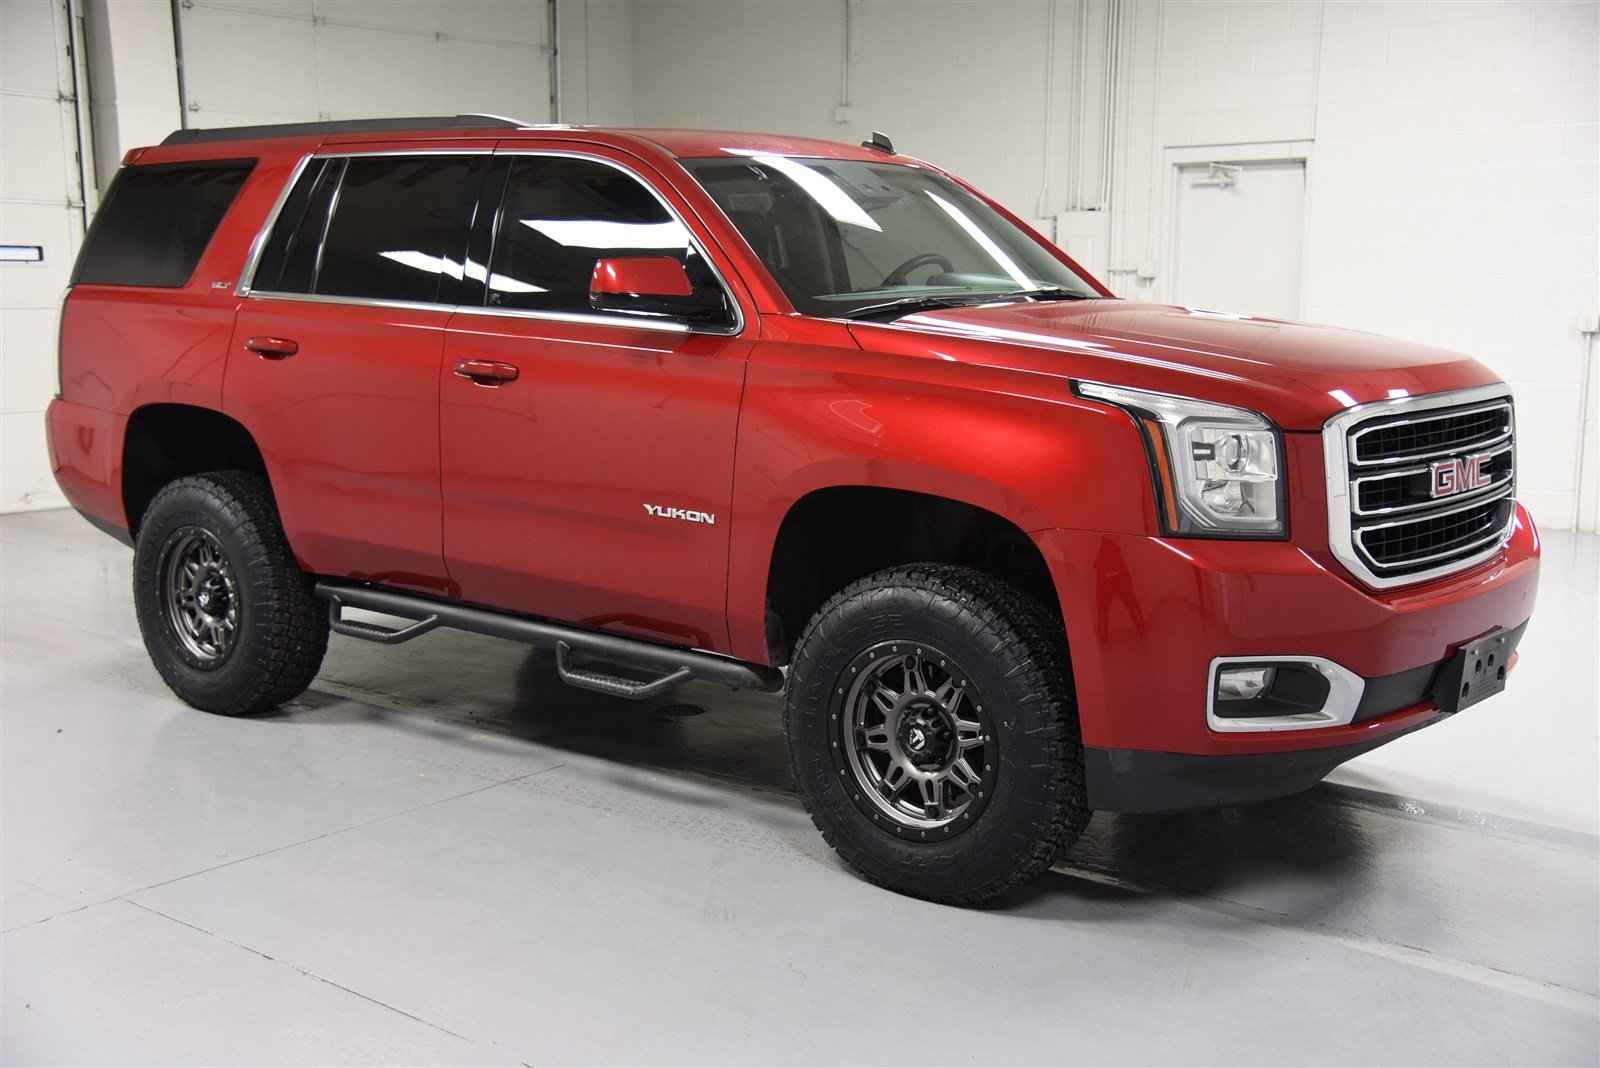 fuel economy of the 2008 gmc yukon denali 1500 awd autos. Black Bedroom Furniture Sets. Home Design Ideas